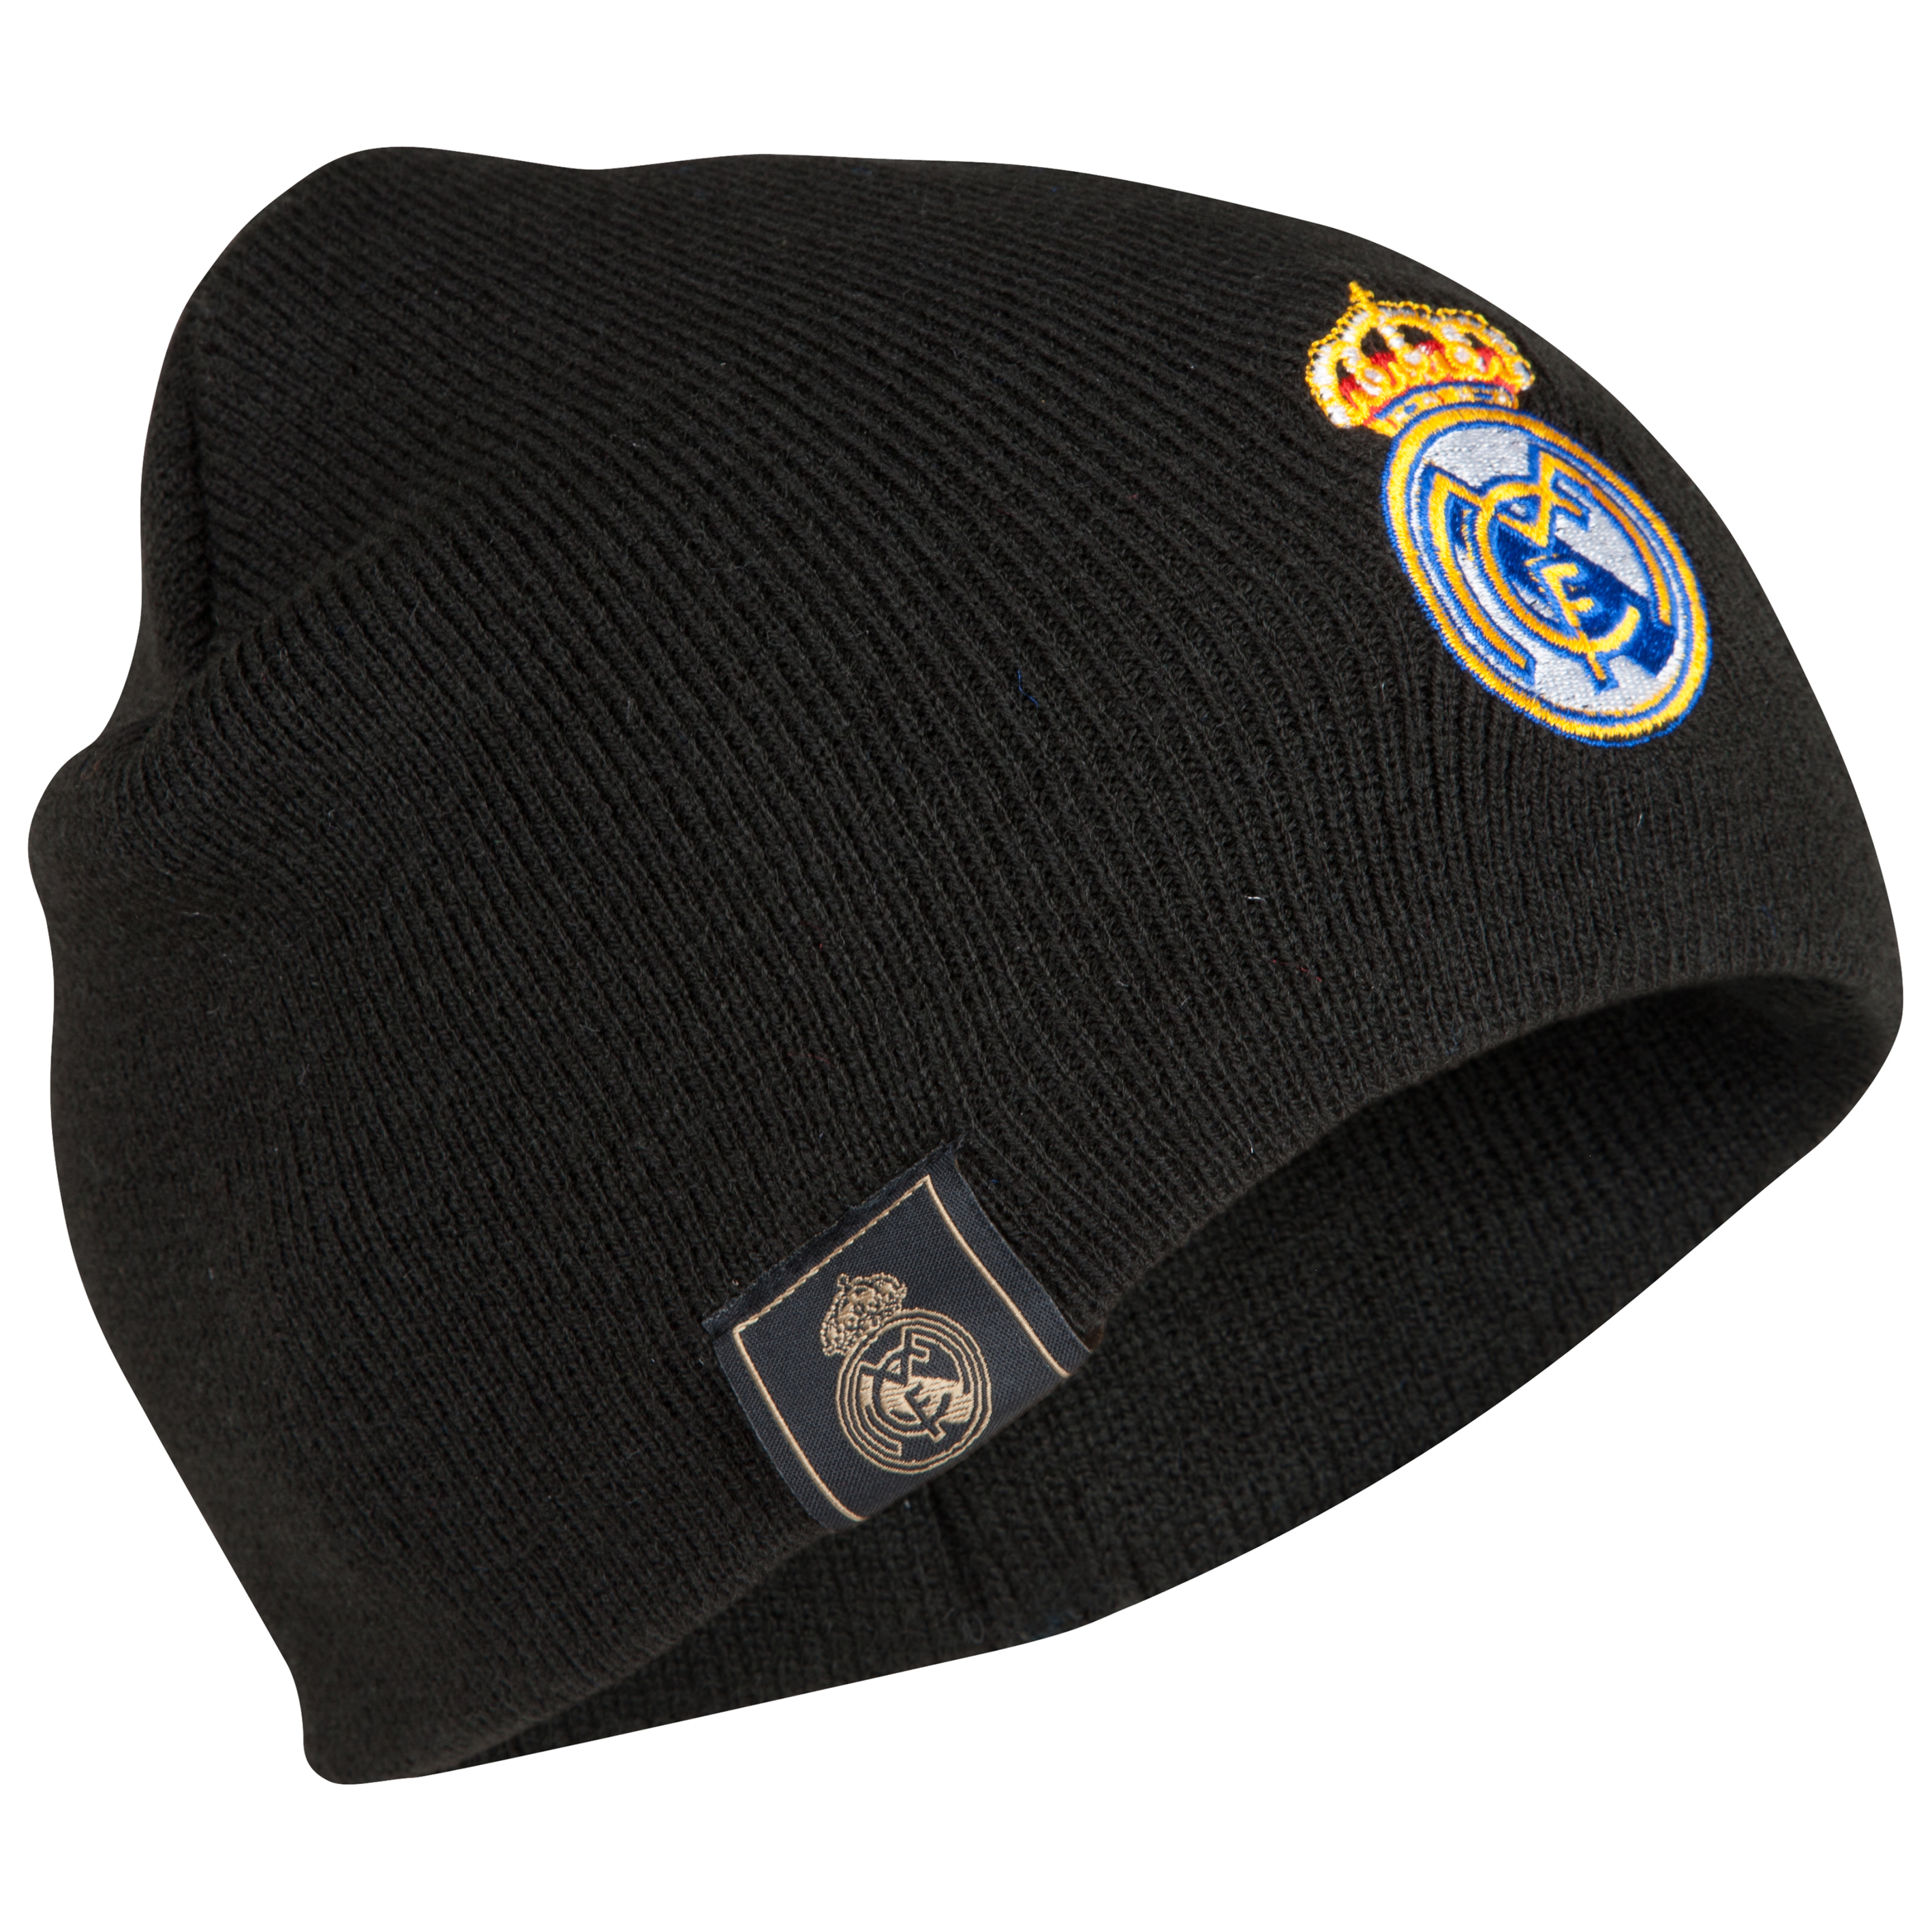 Boina escudo Real Madrid - Negro